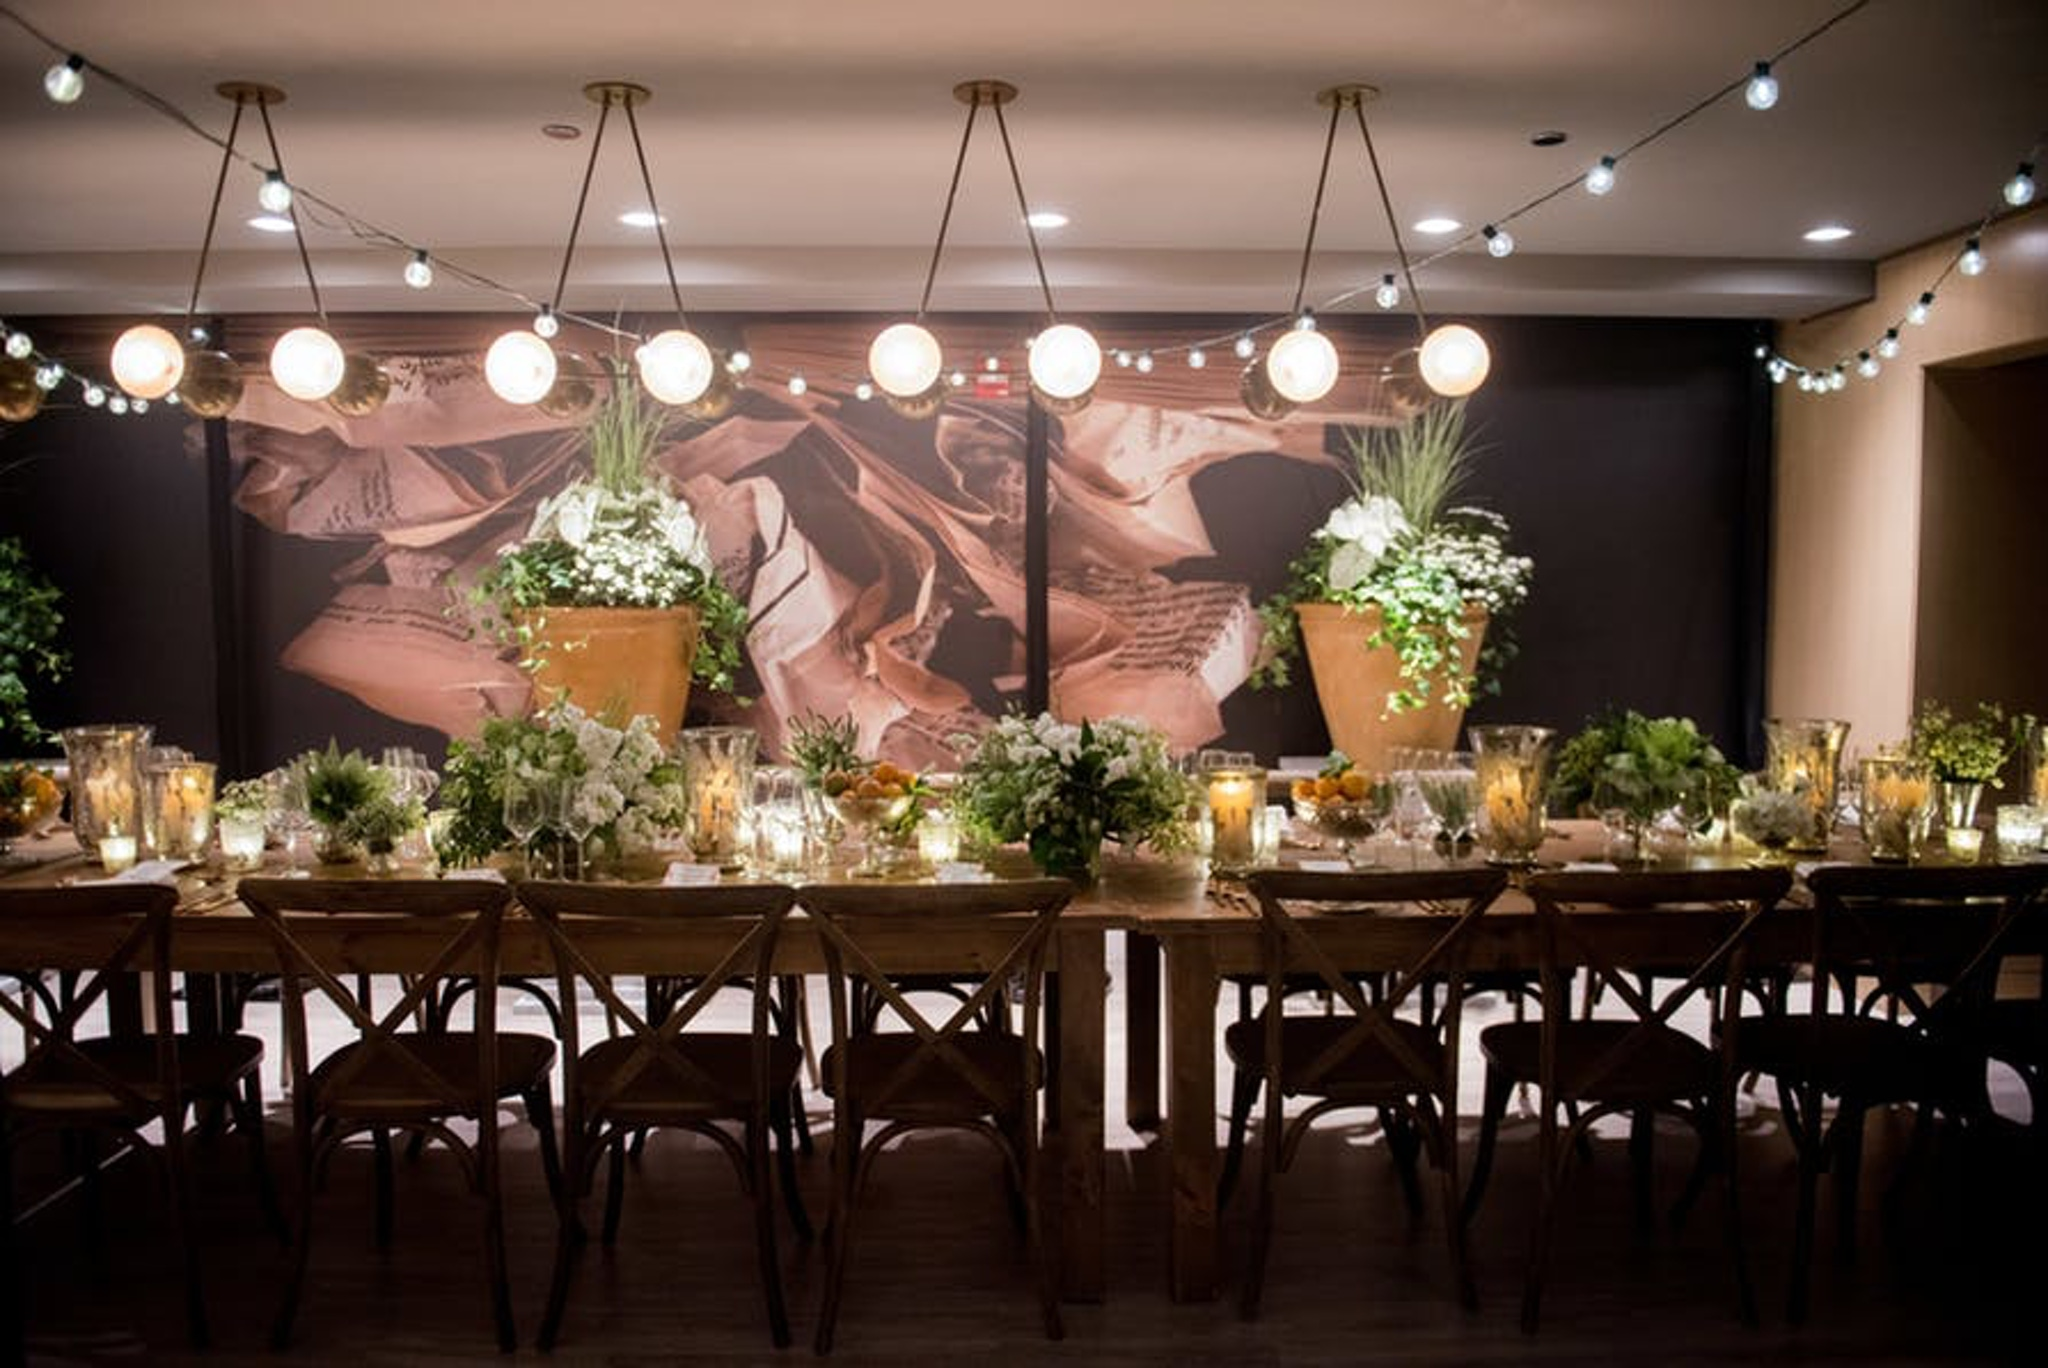 a long table with greenery placed on top